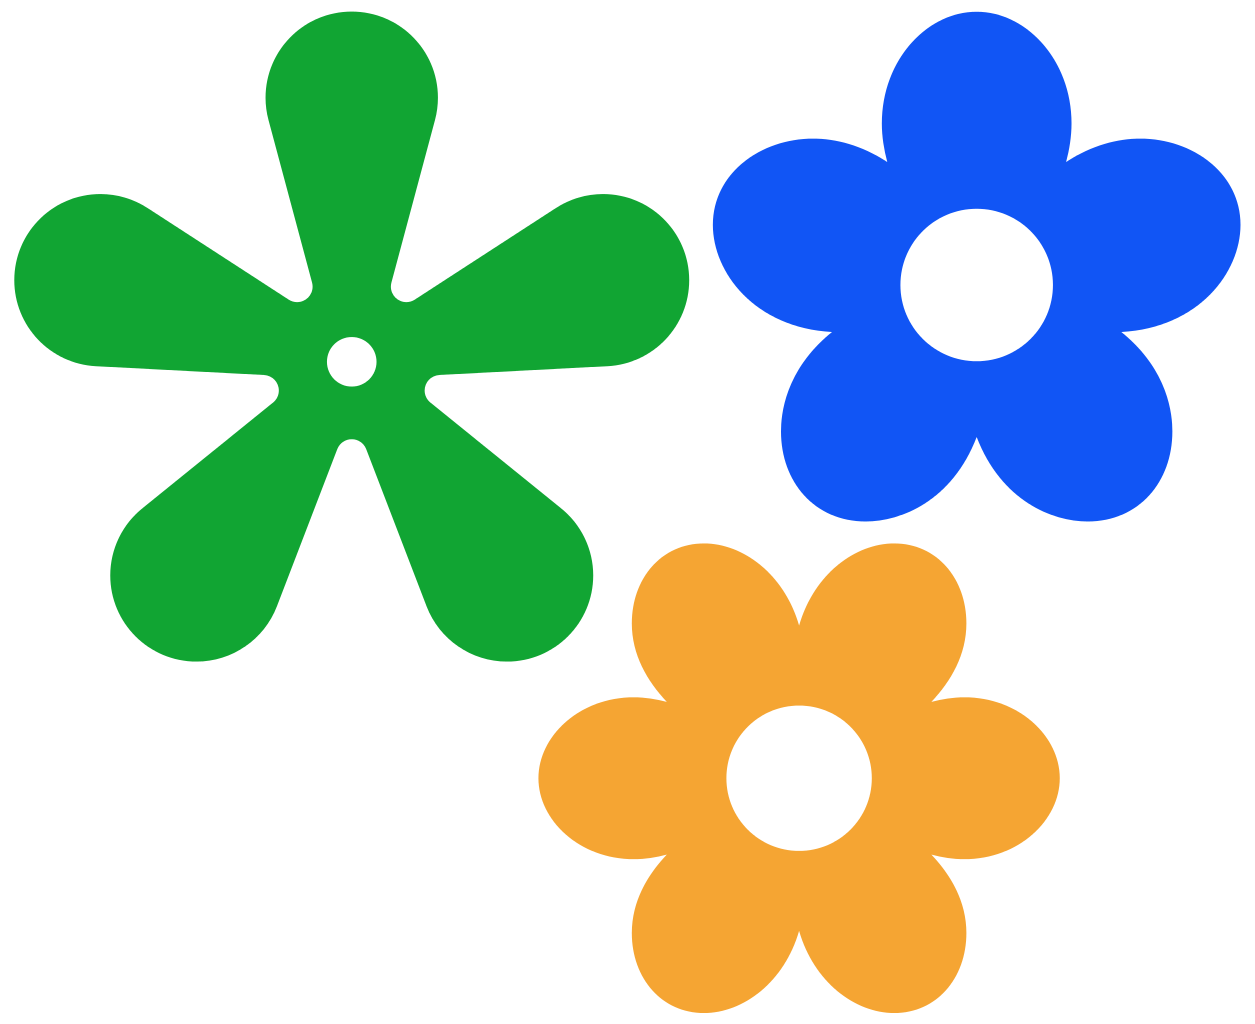 Flower icon clipart. File retro petals svg